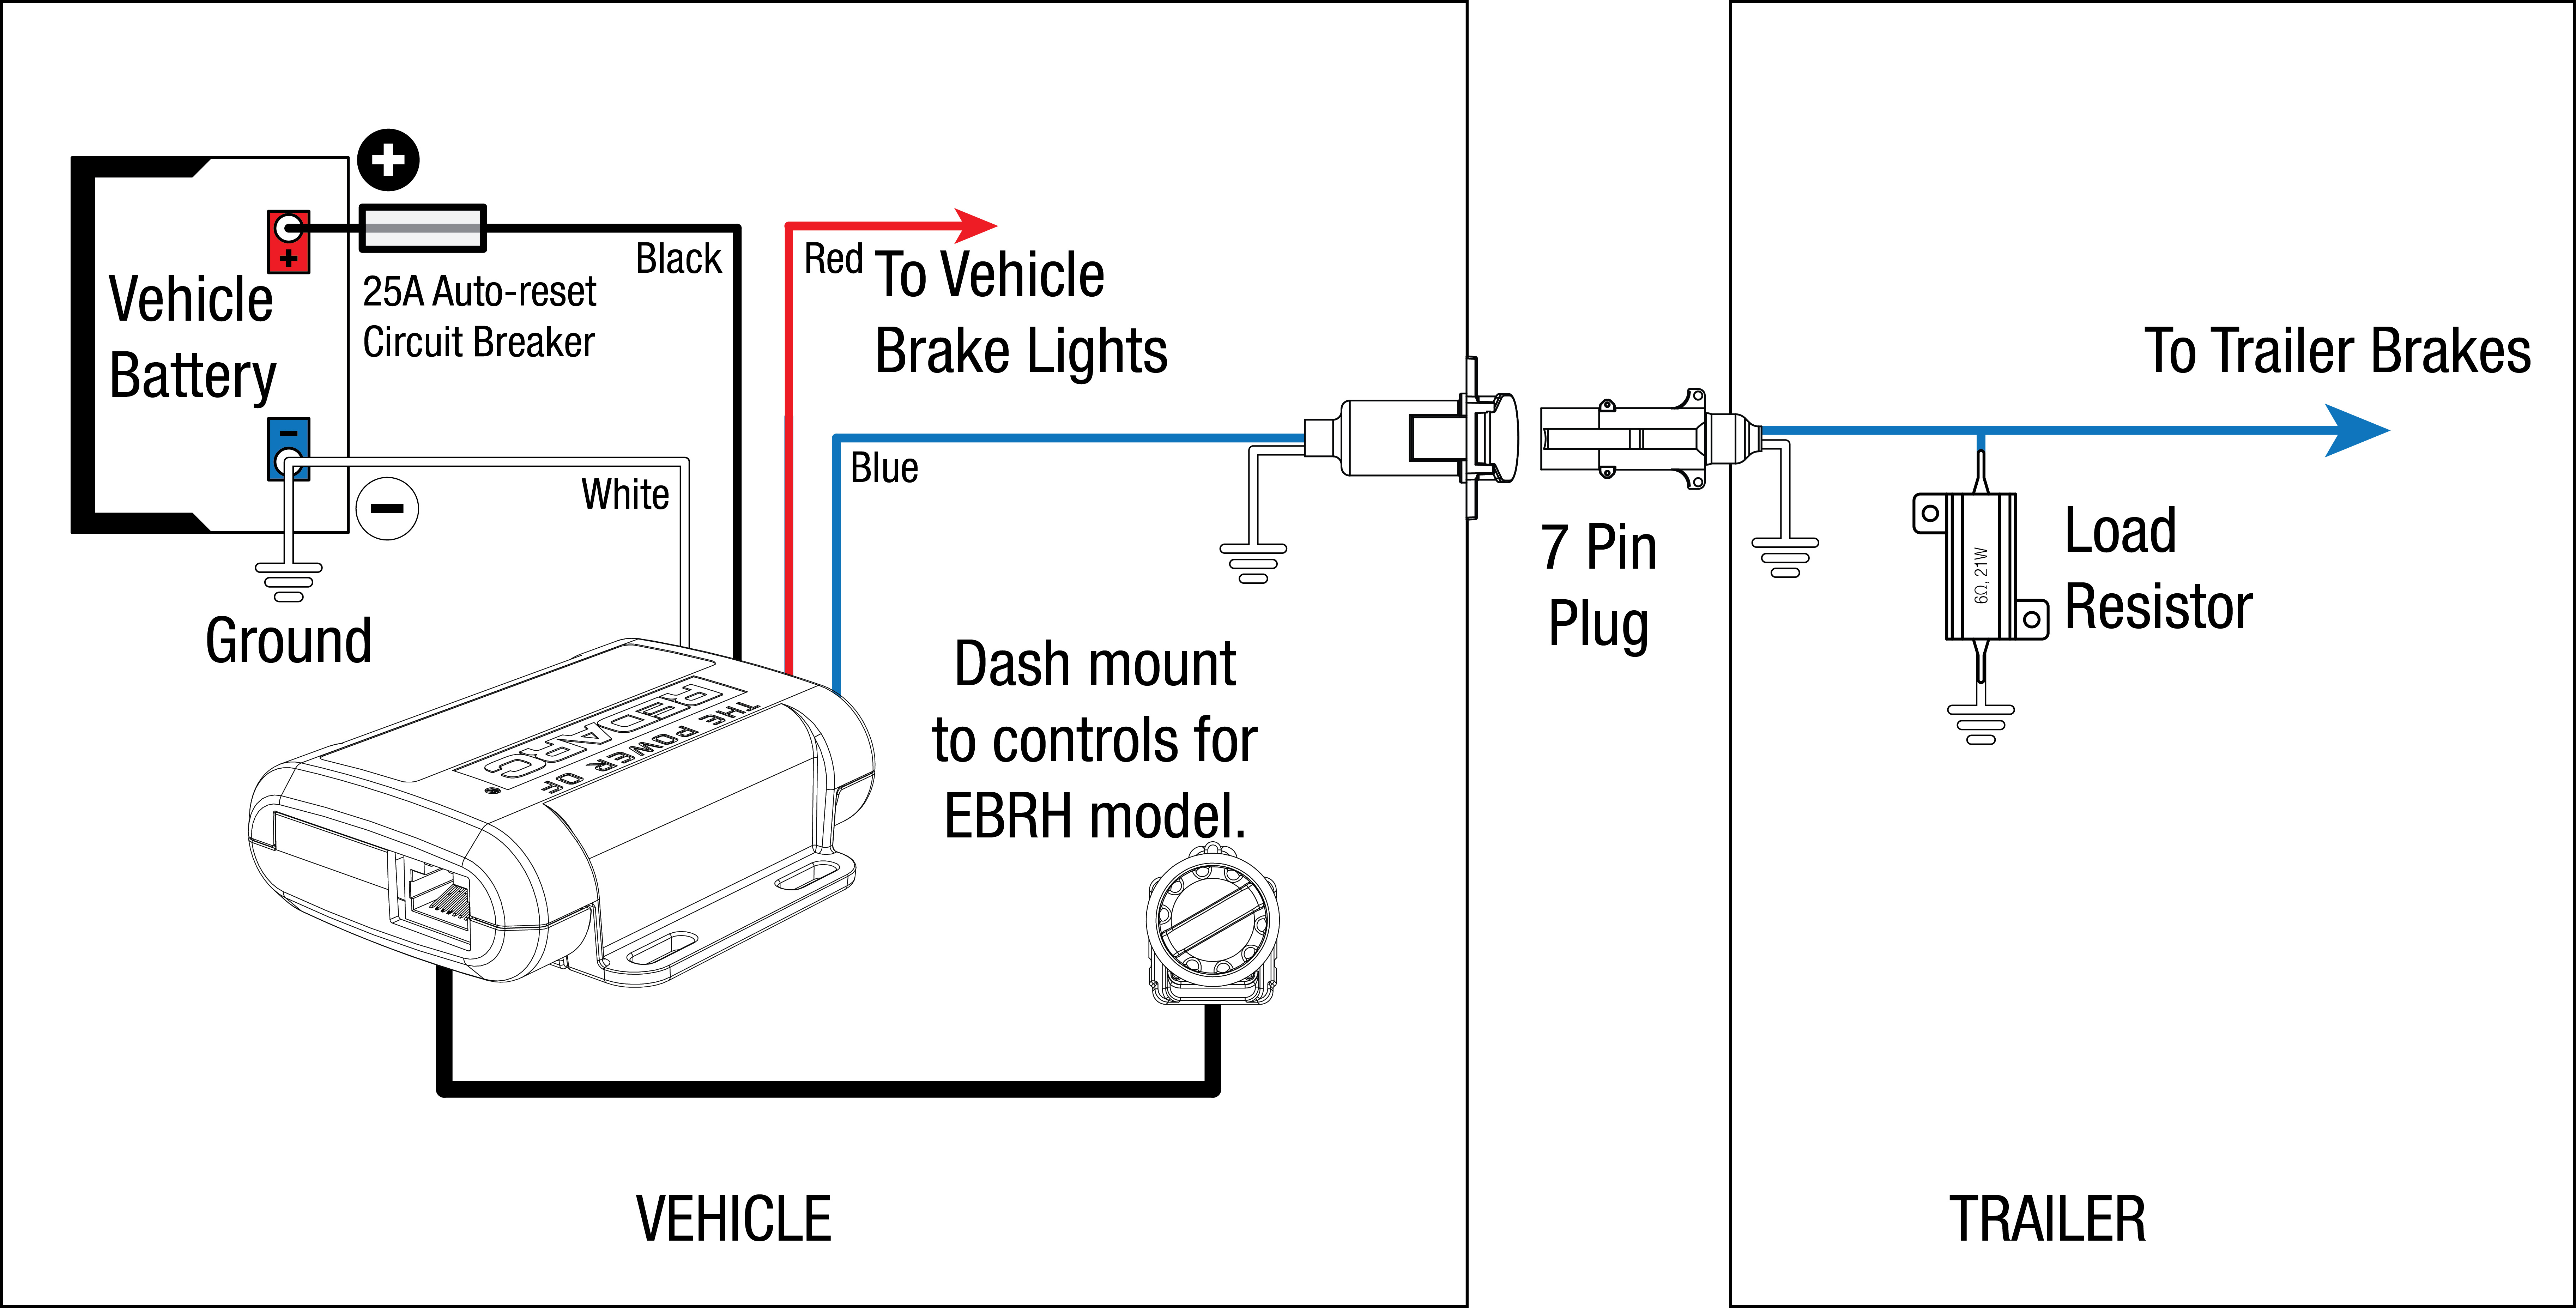 Tow-Pro Electric/hydraulic Braking Systems | Redarc Electronics - Electric Trailer Brakes Wiring Diagram